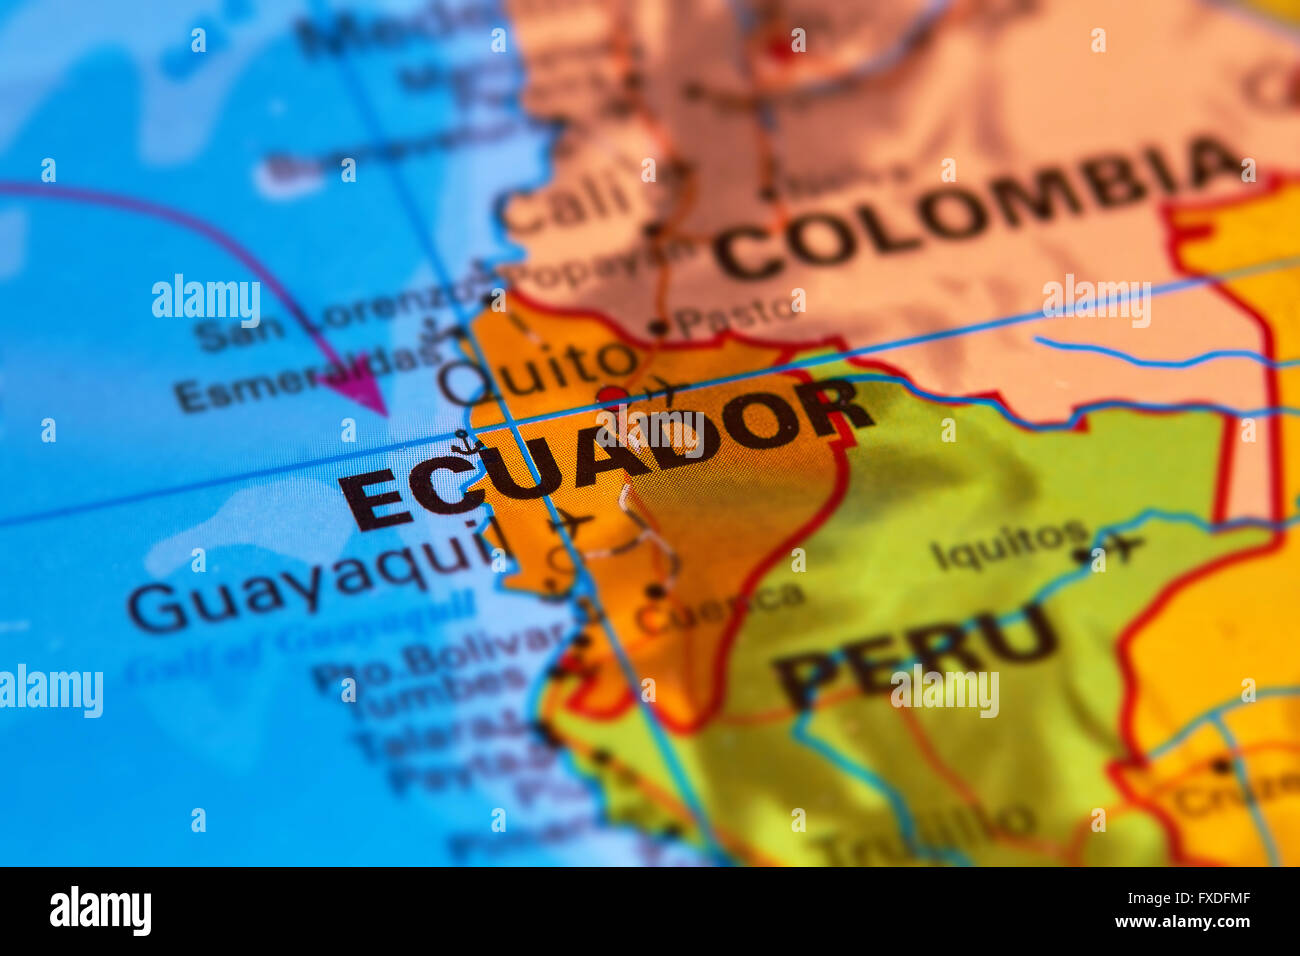 Ecuador and capital city quito on the world map stock photo ecuador and capital city quito on the world map gumiabroncs Gallery